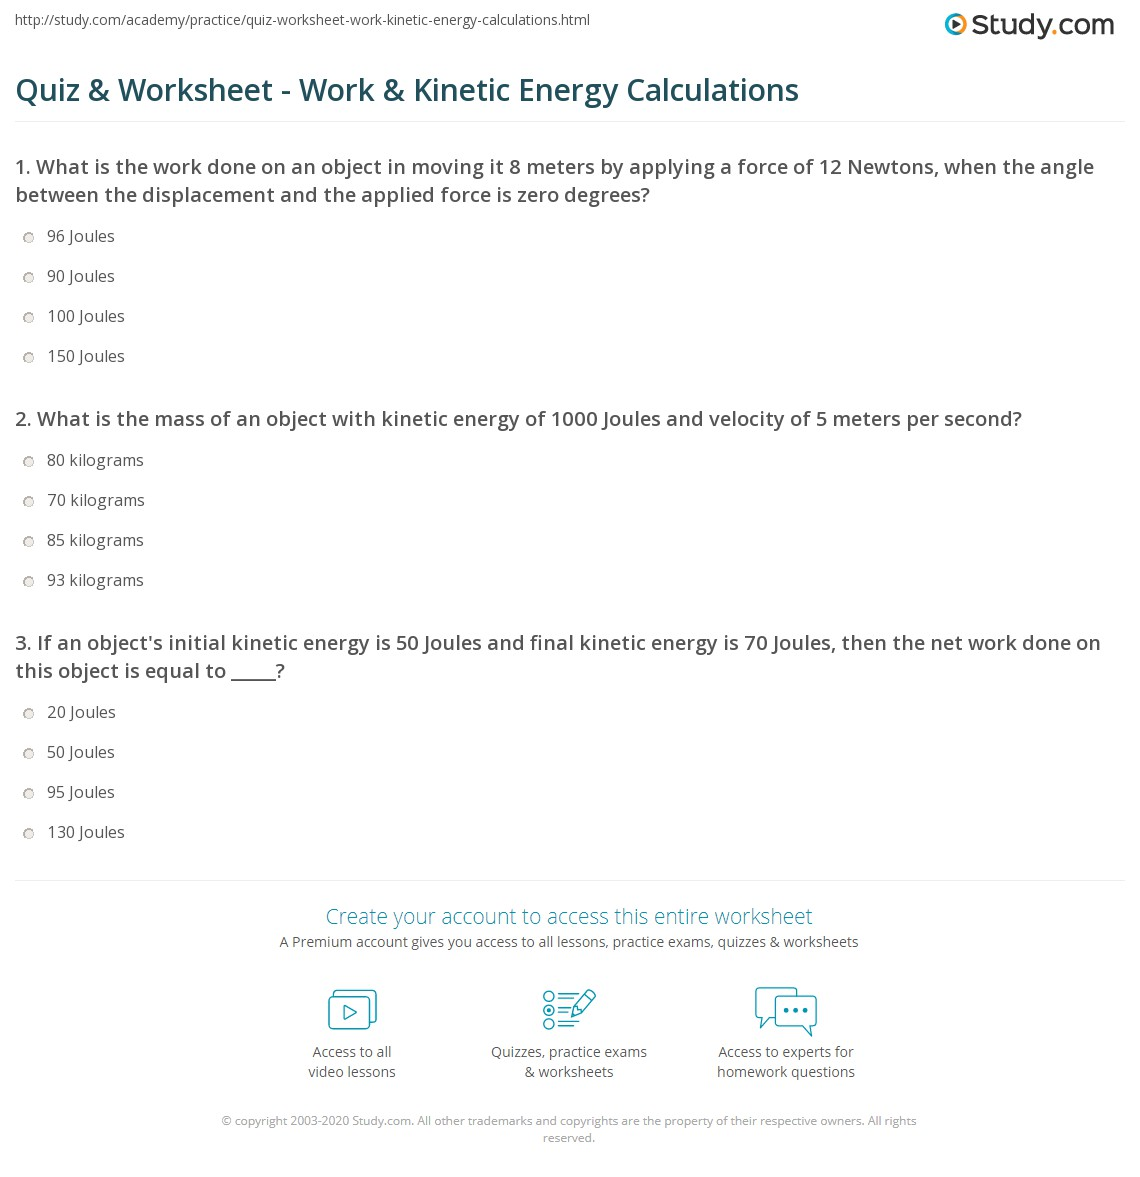 Printables Of Worksheet On Energy Calculations